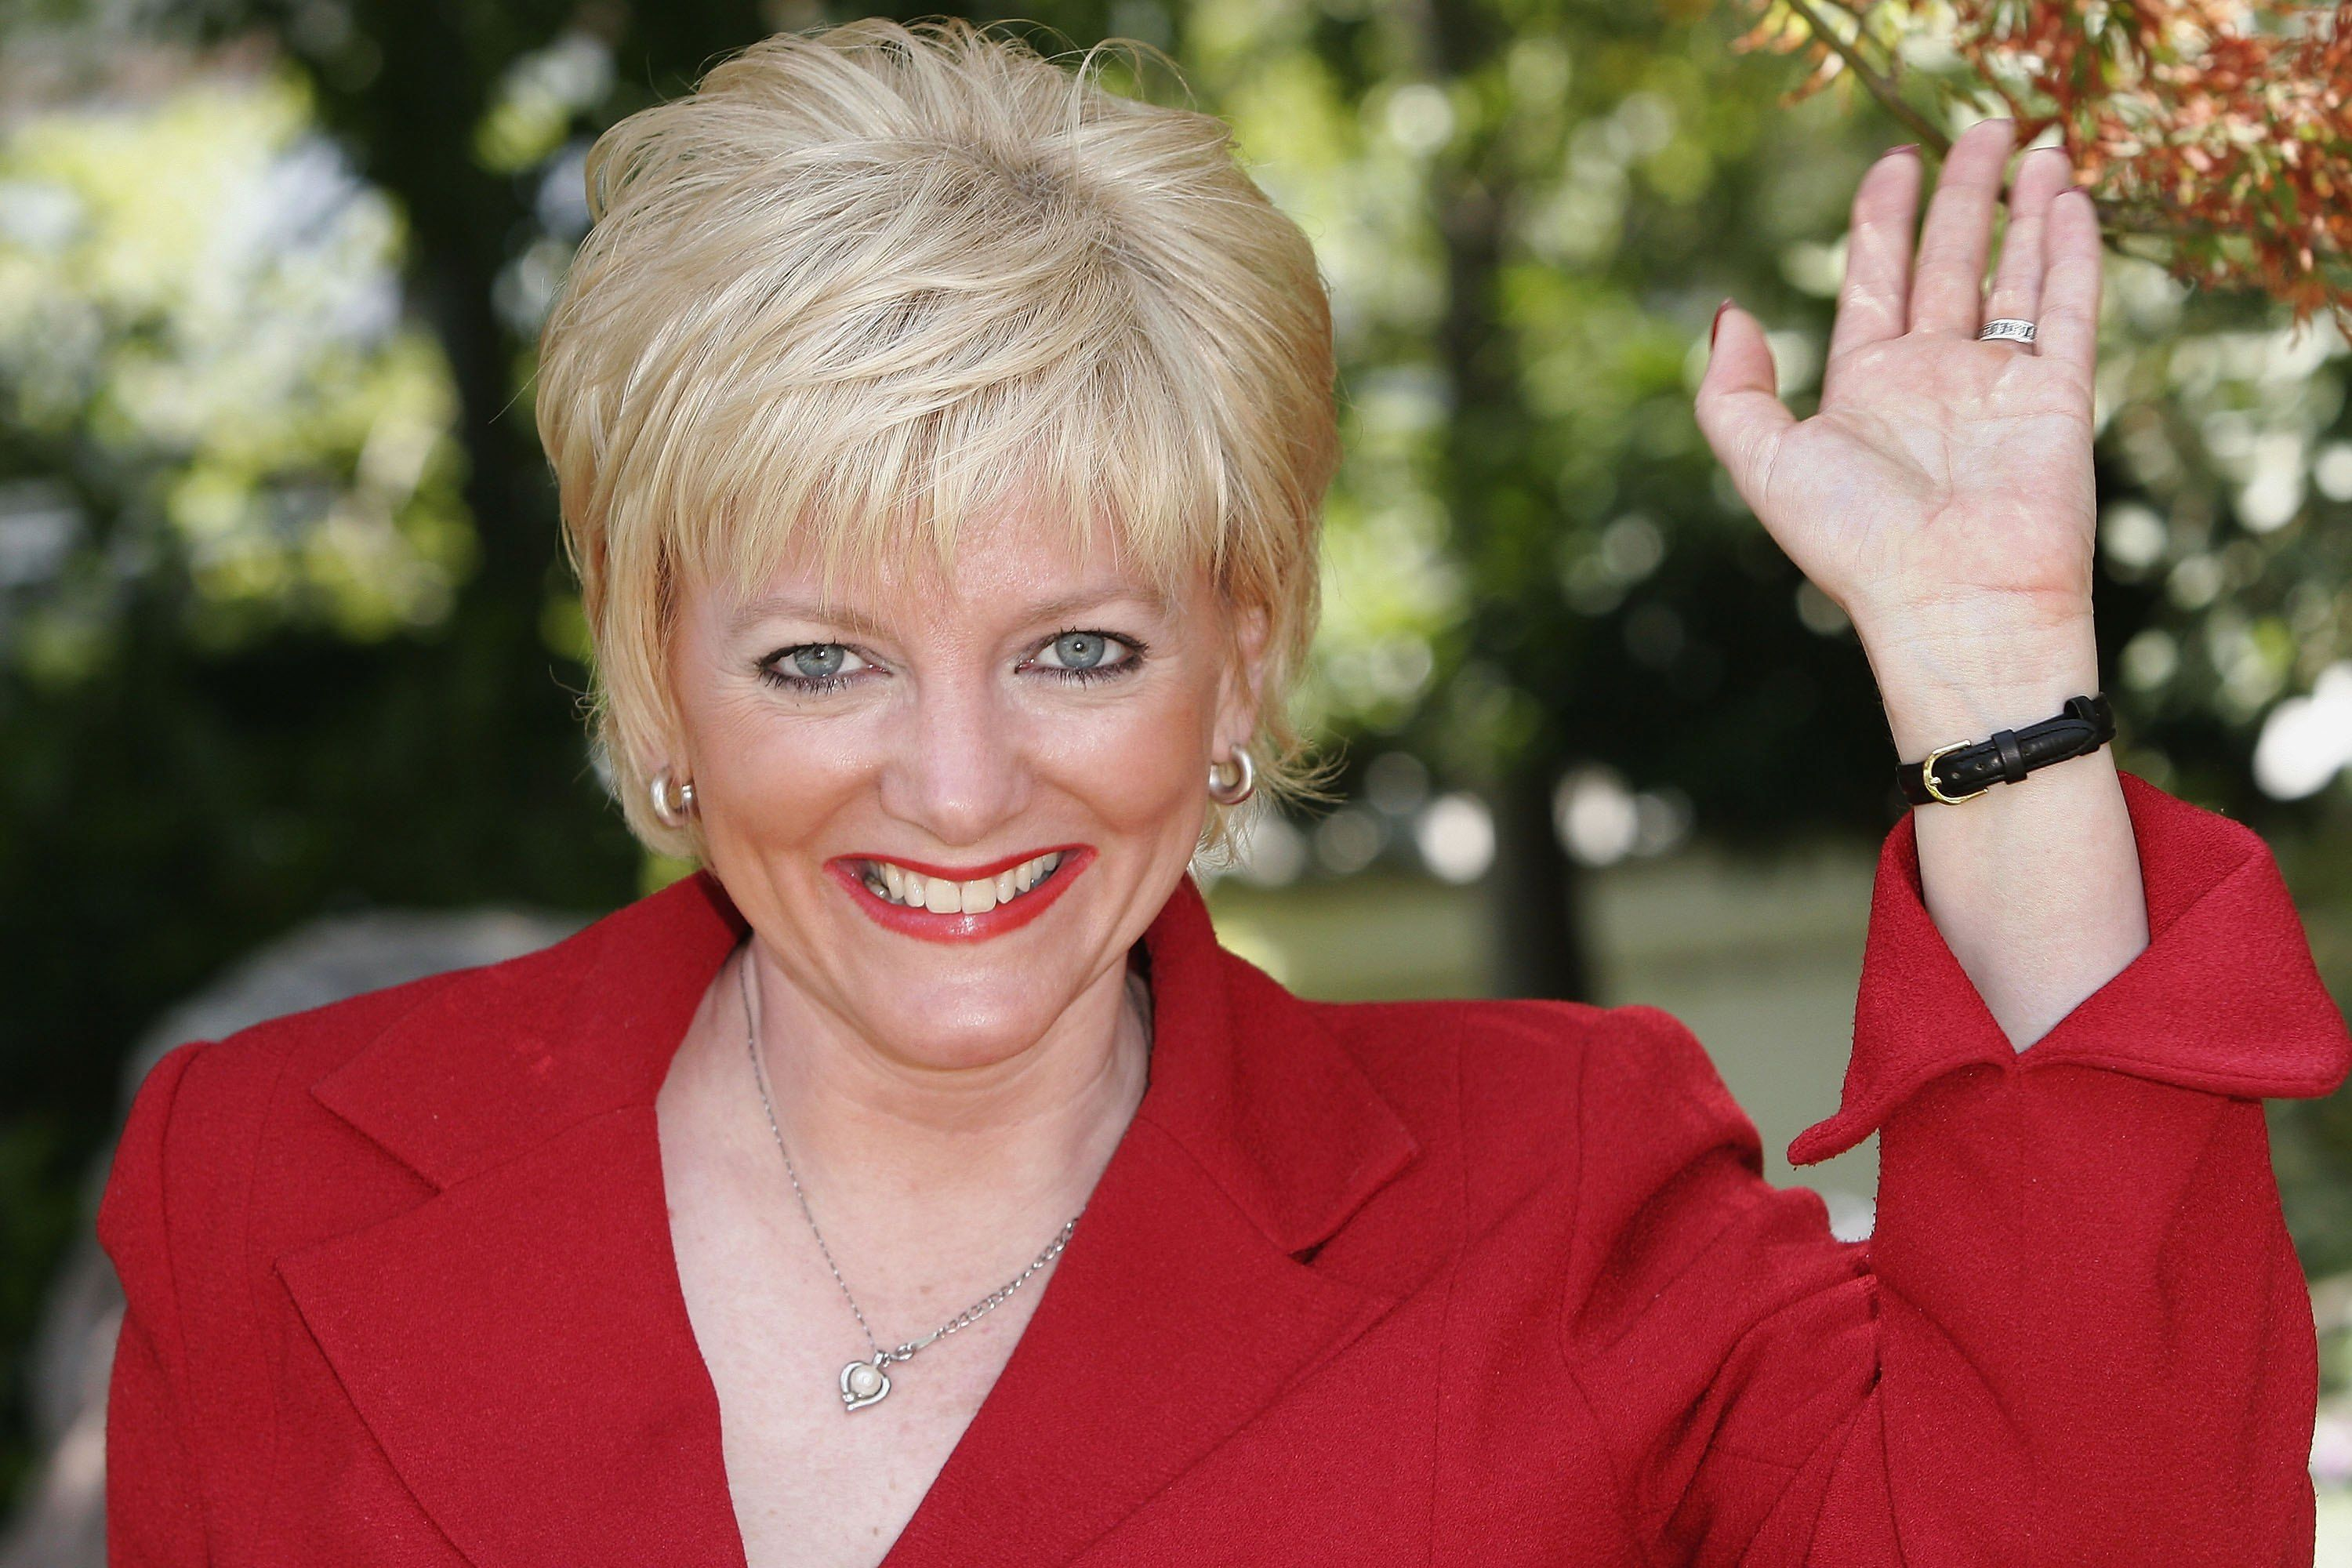 Alison Arngrim au Forum Grimaldi, le 27 juin 2006 à Monte Carlo, Monaco. | Photo : Getty Images